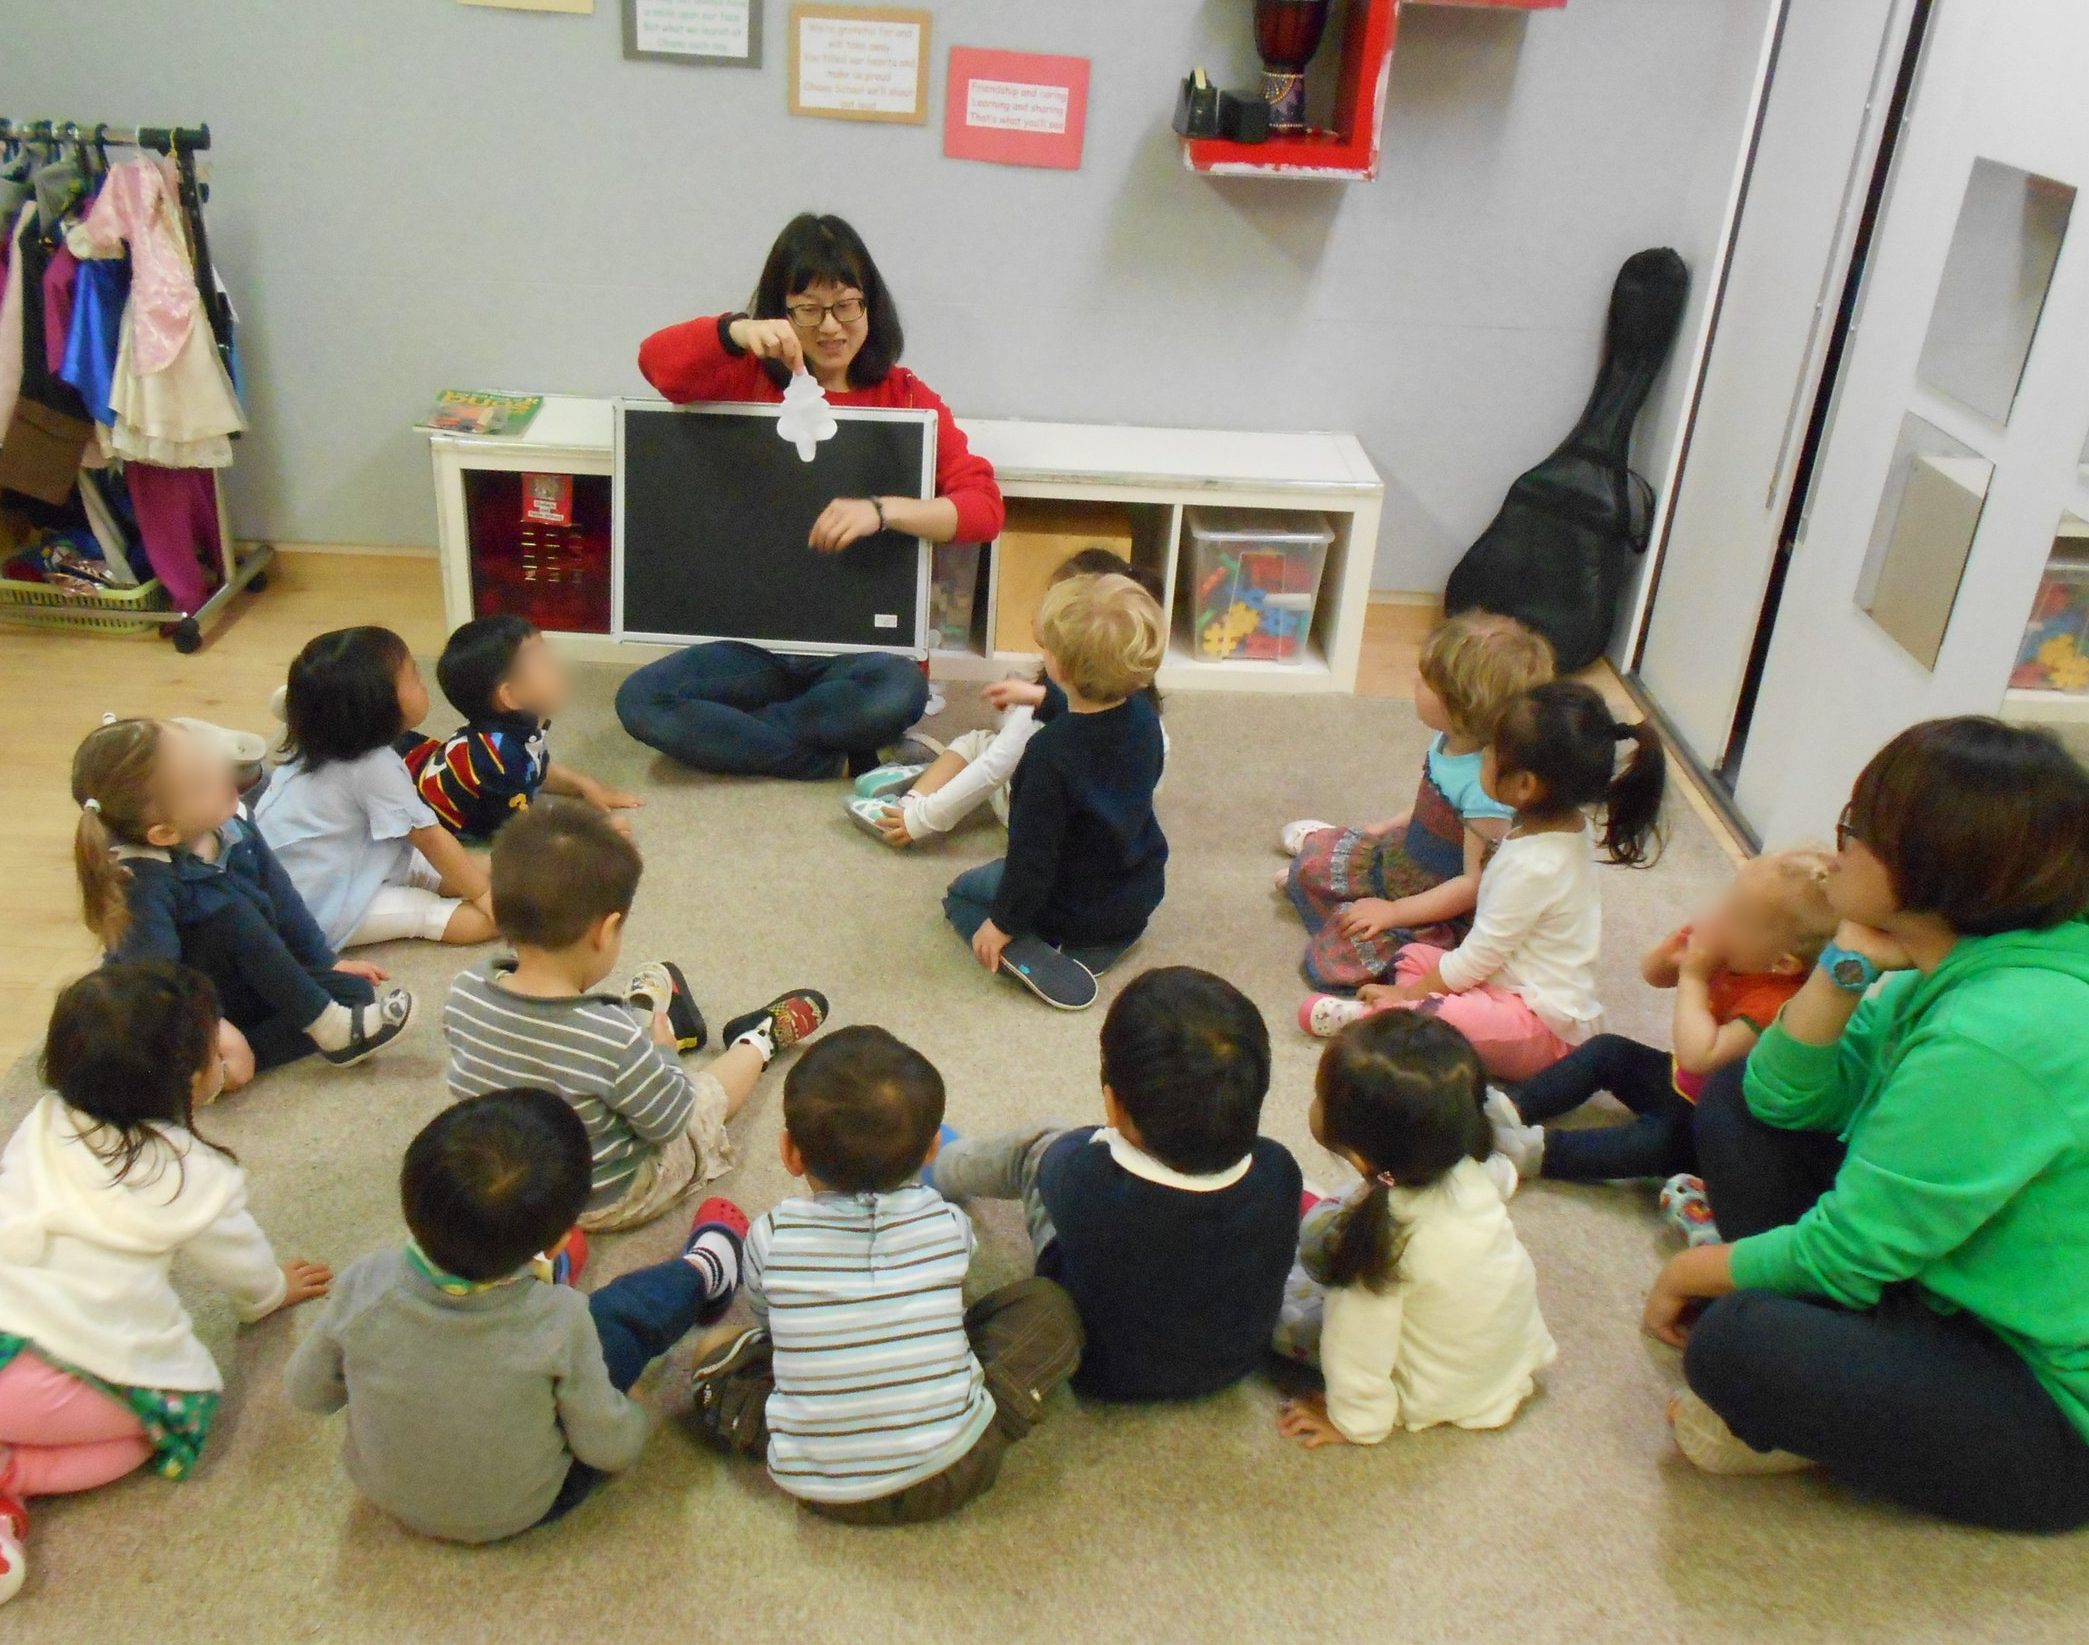 Chiaki led us in talking about the ladybug and asking us to guess what the paper cut-outs were.